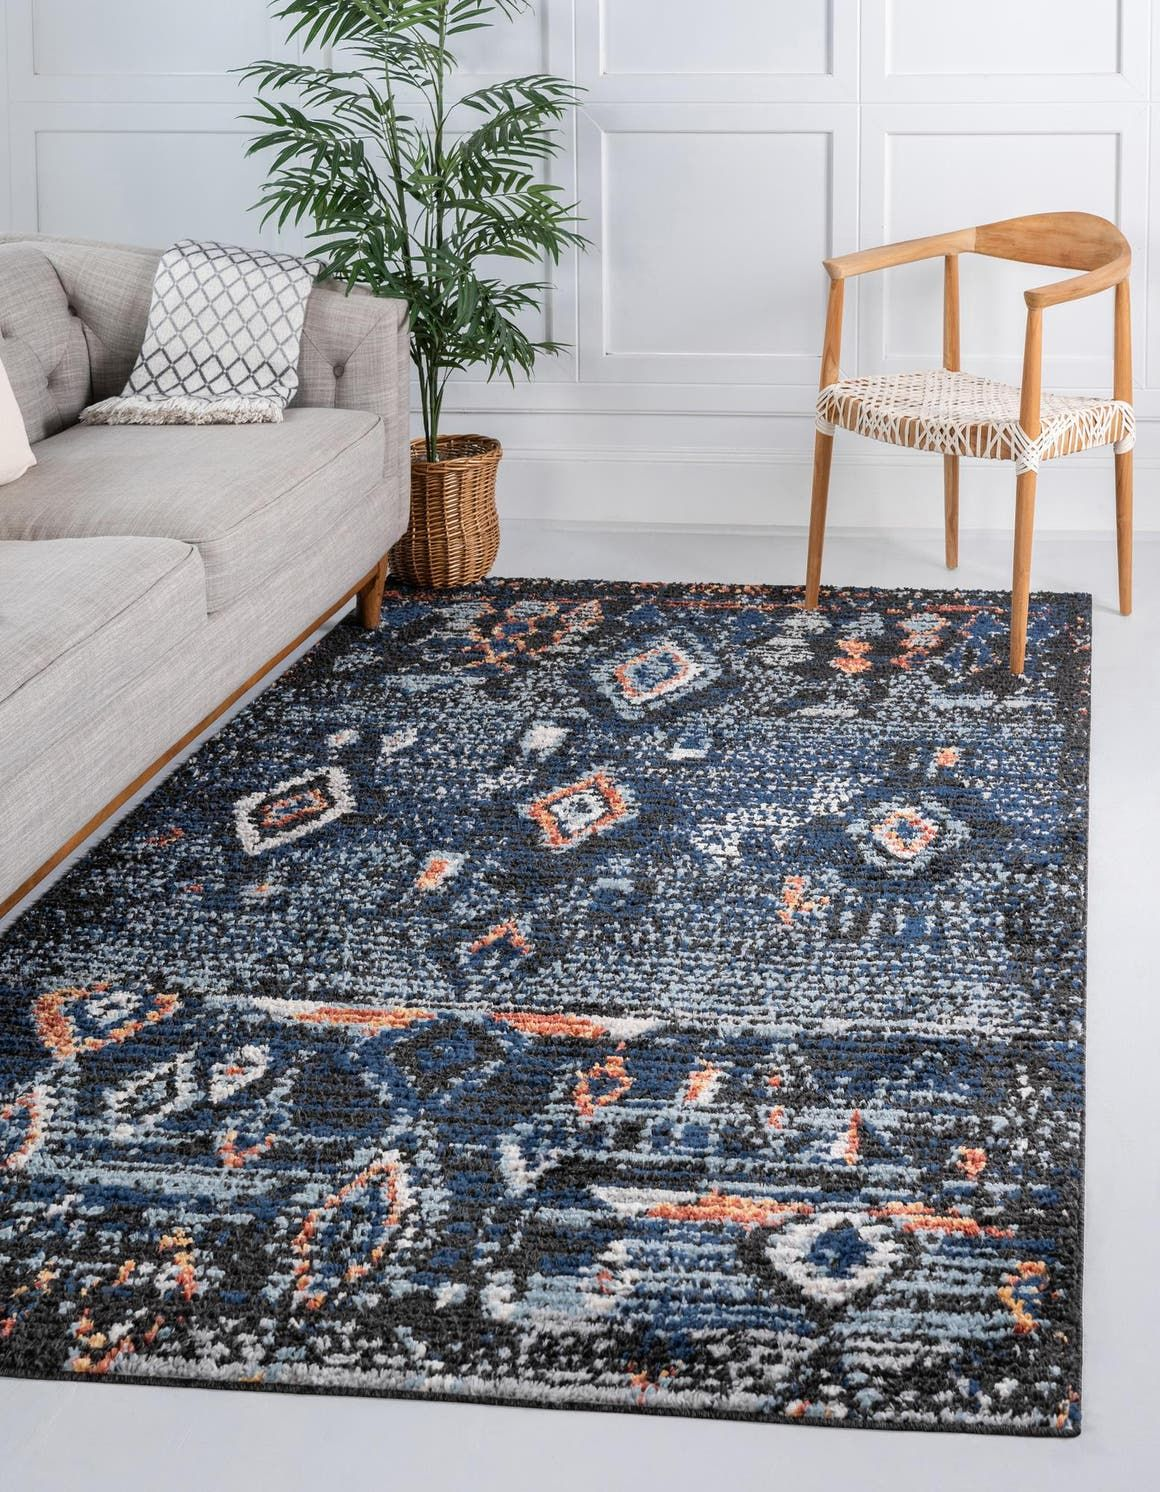 Morocco Light Blue 2x3 Accent Rug In 2020 Rugs Unique Loom